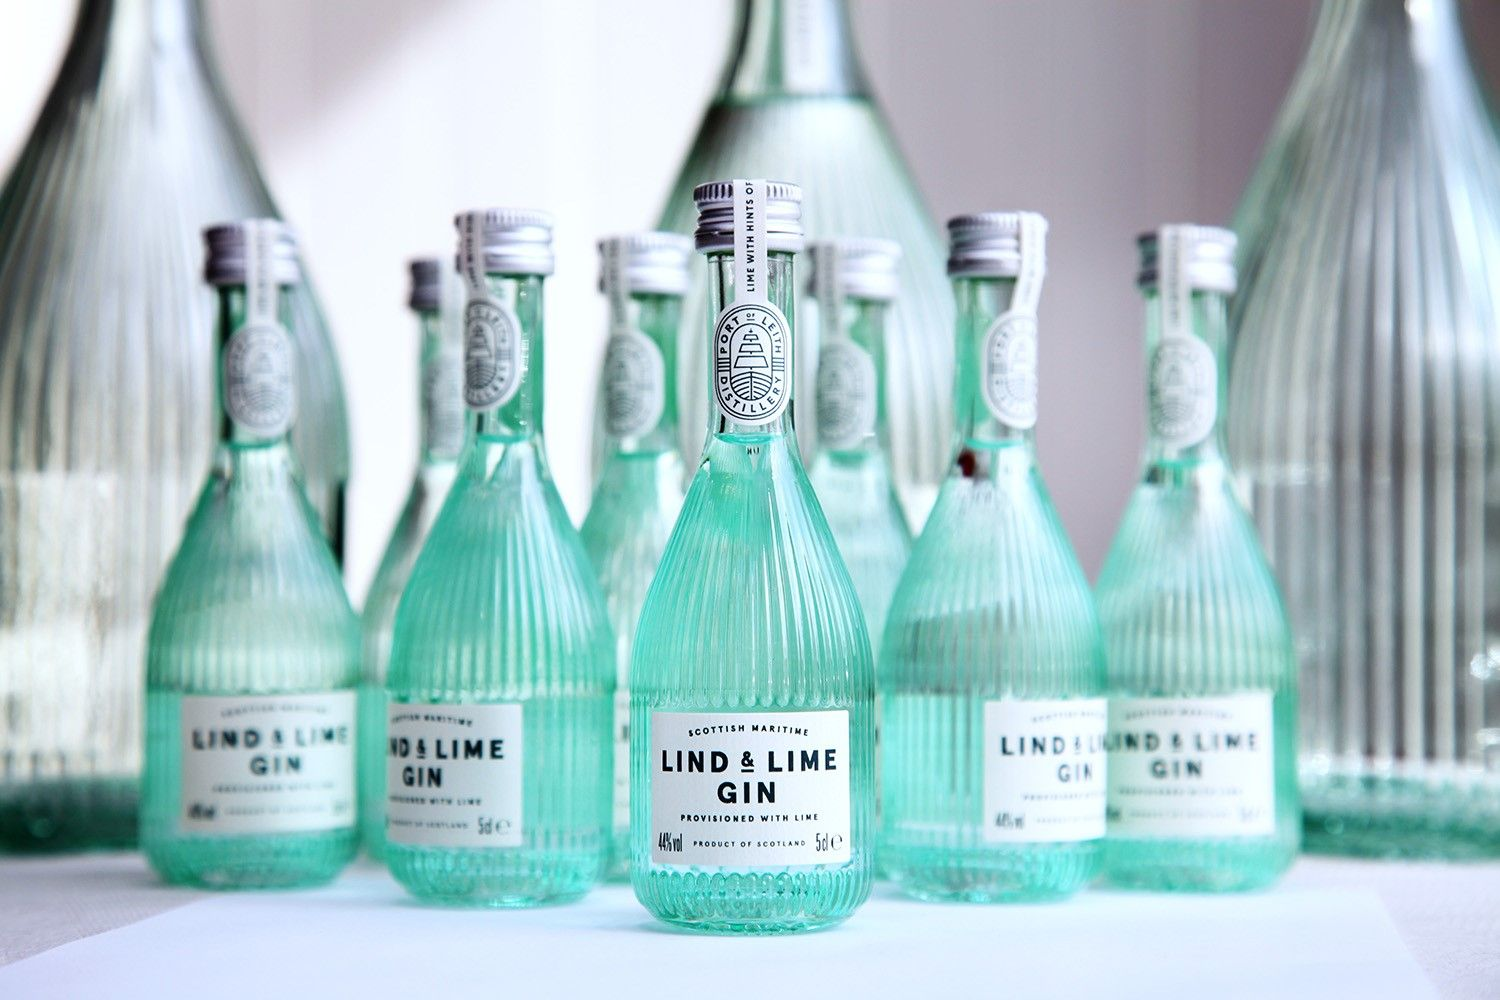 Lind & Lime Gin Miniature